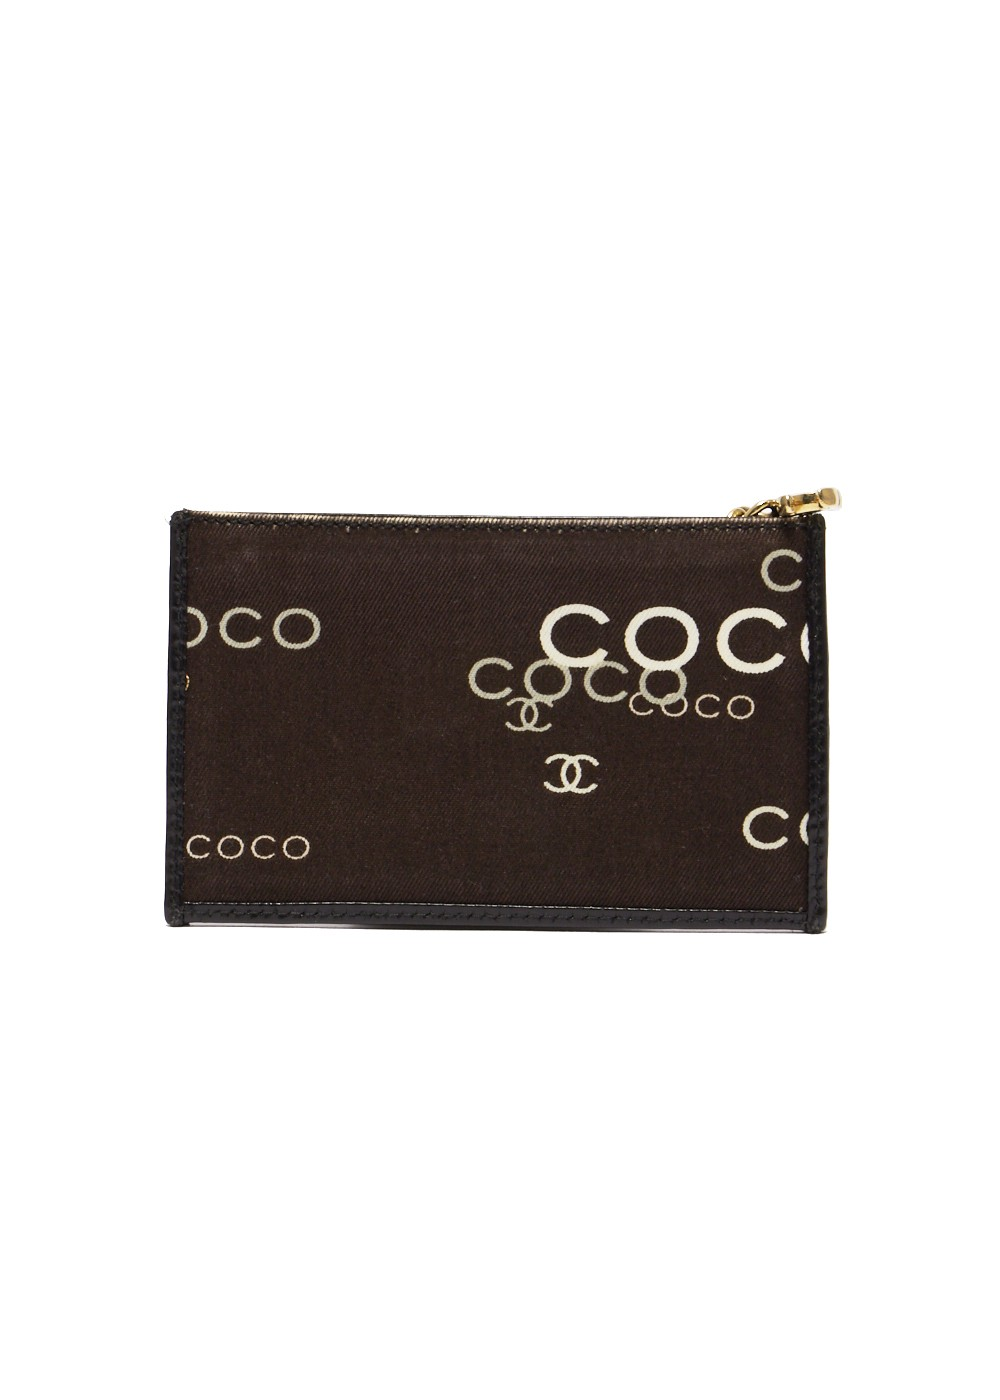 CHANEL COCOキャンバスケース |OTHER|コインケース|VINTAGE BRAND COLLECTION_(I)